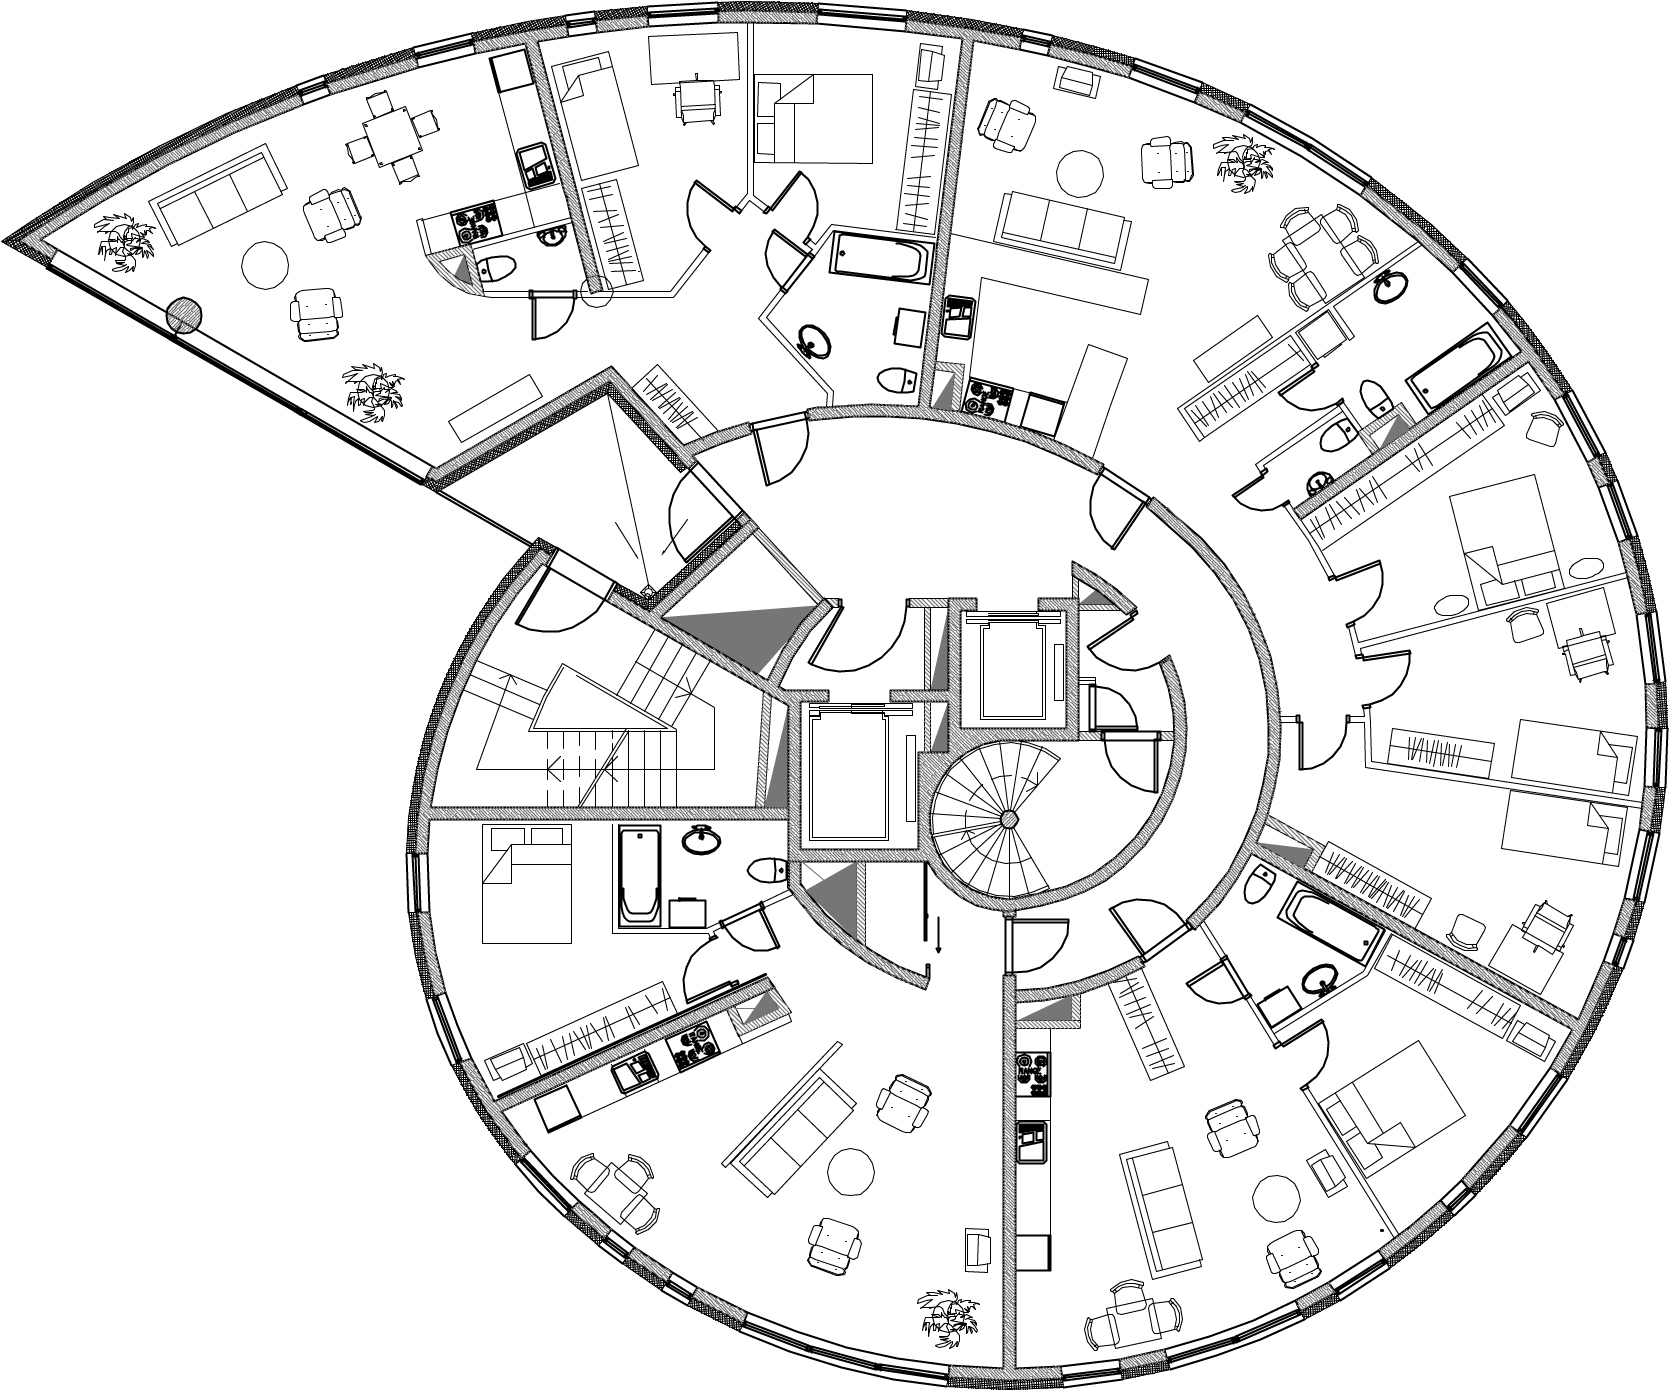 find floor plans for my house radial pinwheel floor plans google search radial architecture plantas de casas croqui 3893